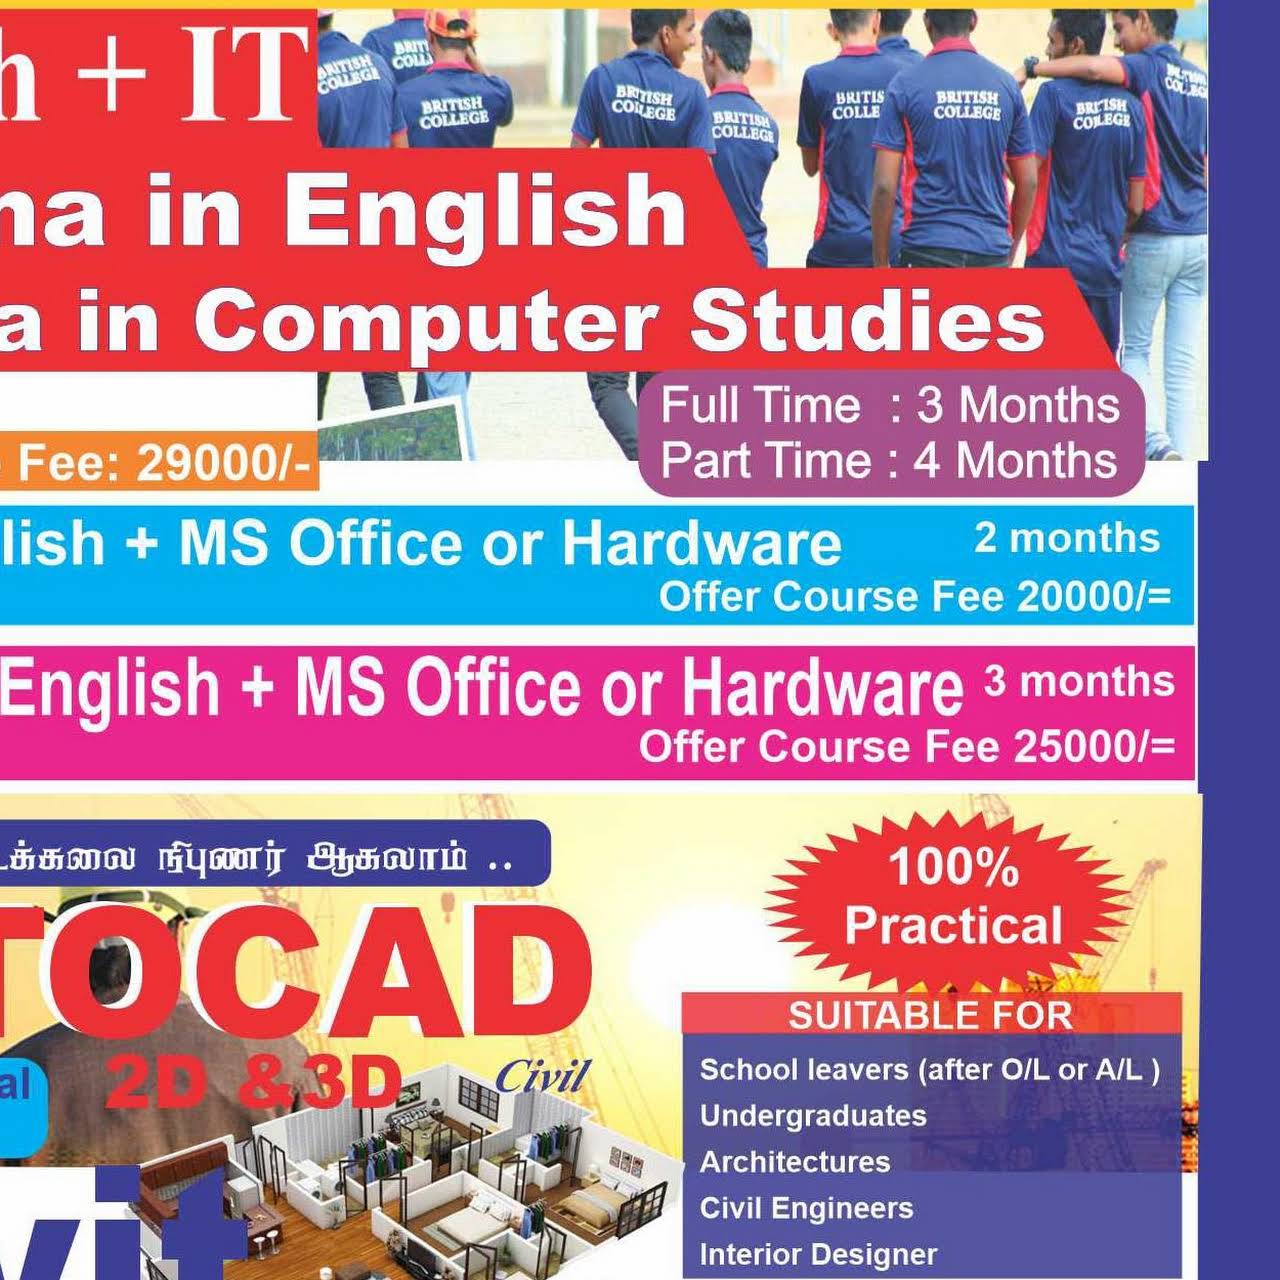 British College Educational Institution In Kandy